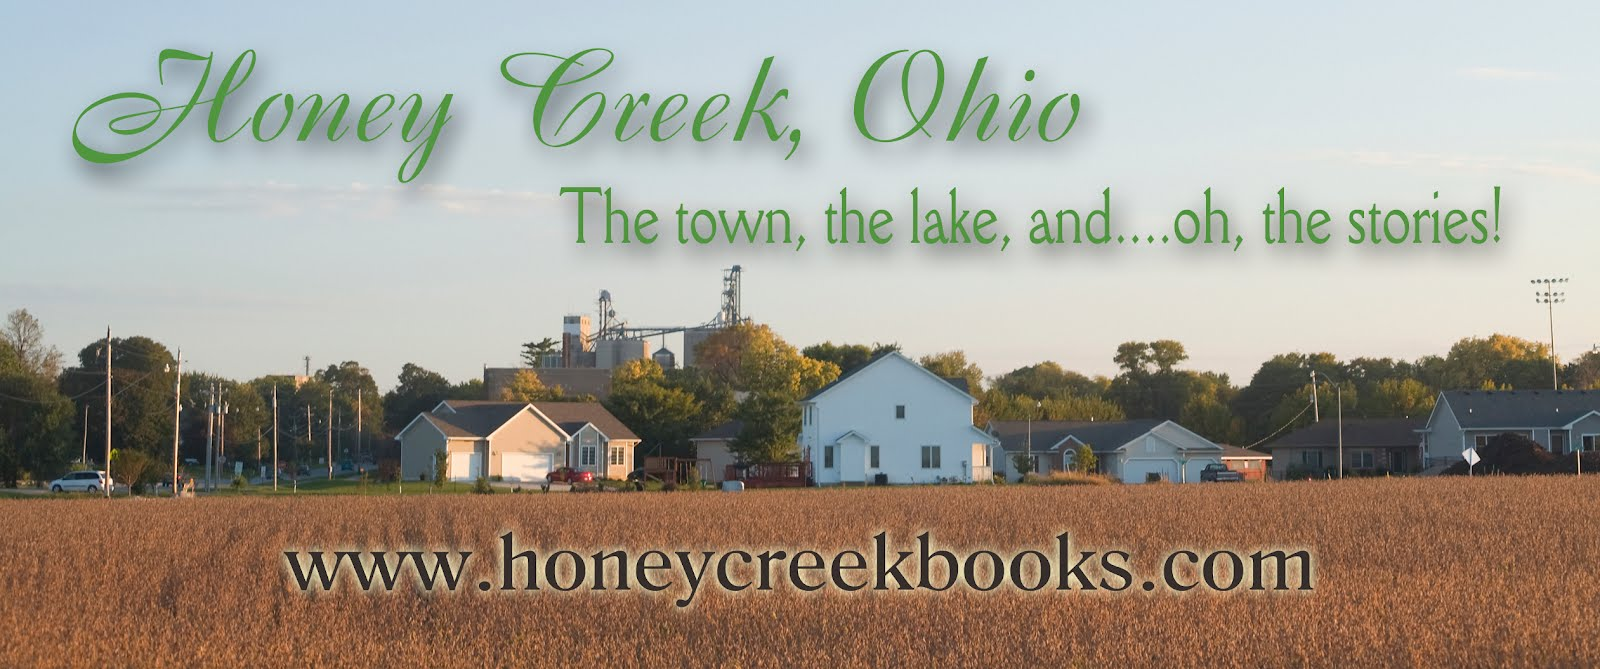 Honey Creek, Ohio